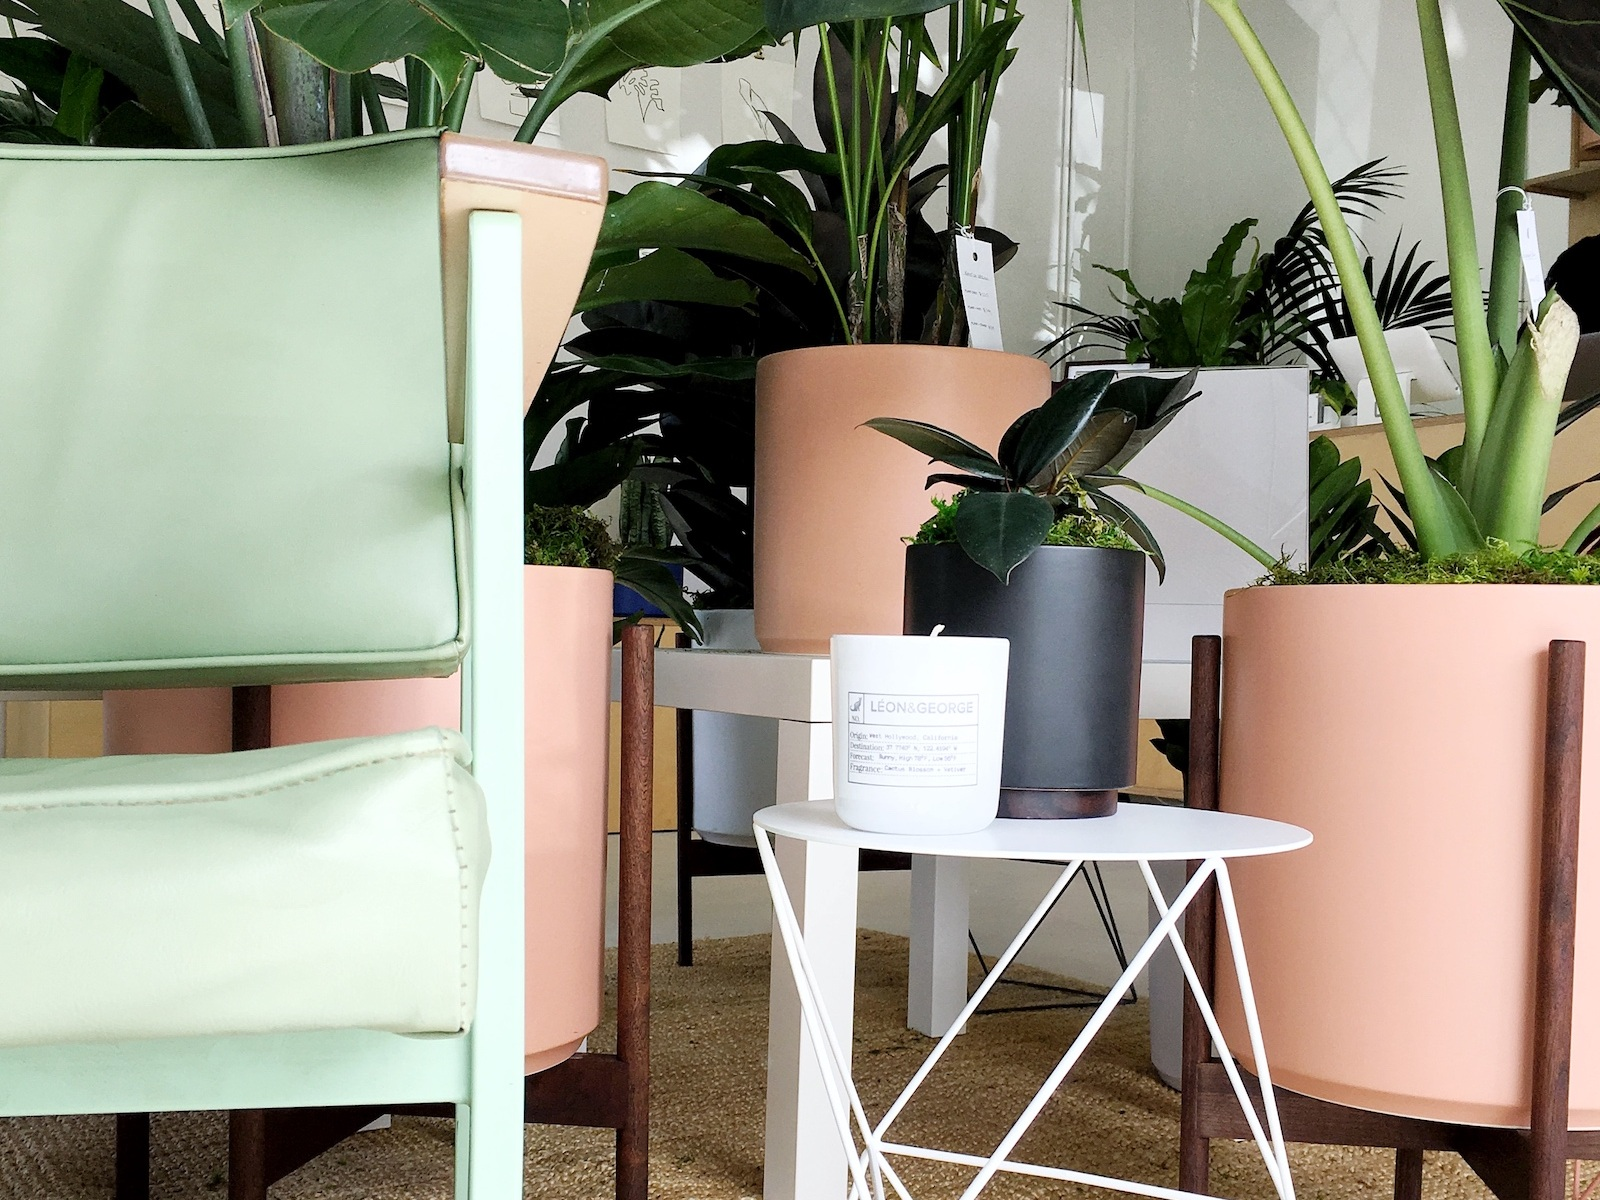 Personal Shopping Sessions - A new way to shop for plants, at our San Francisco showroom.